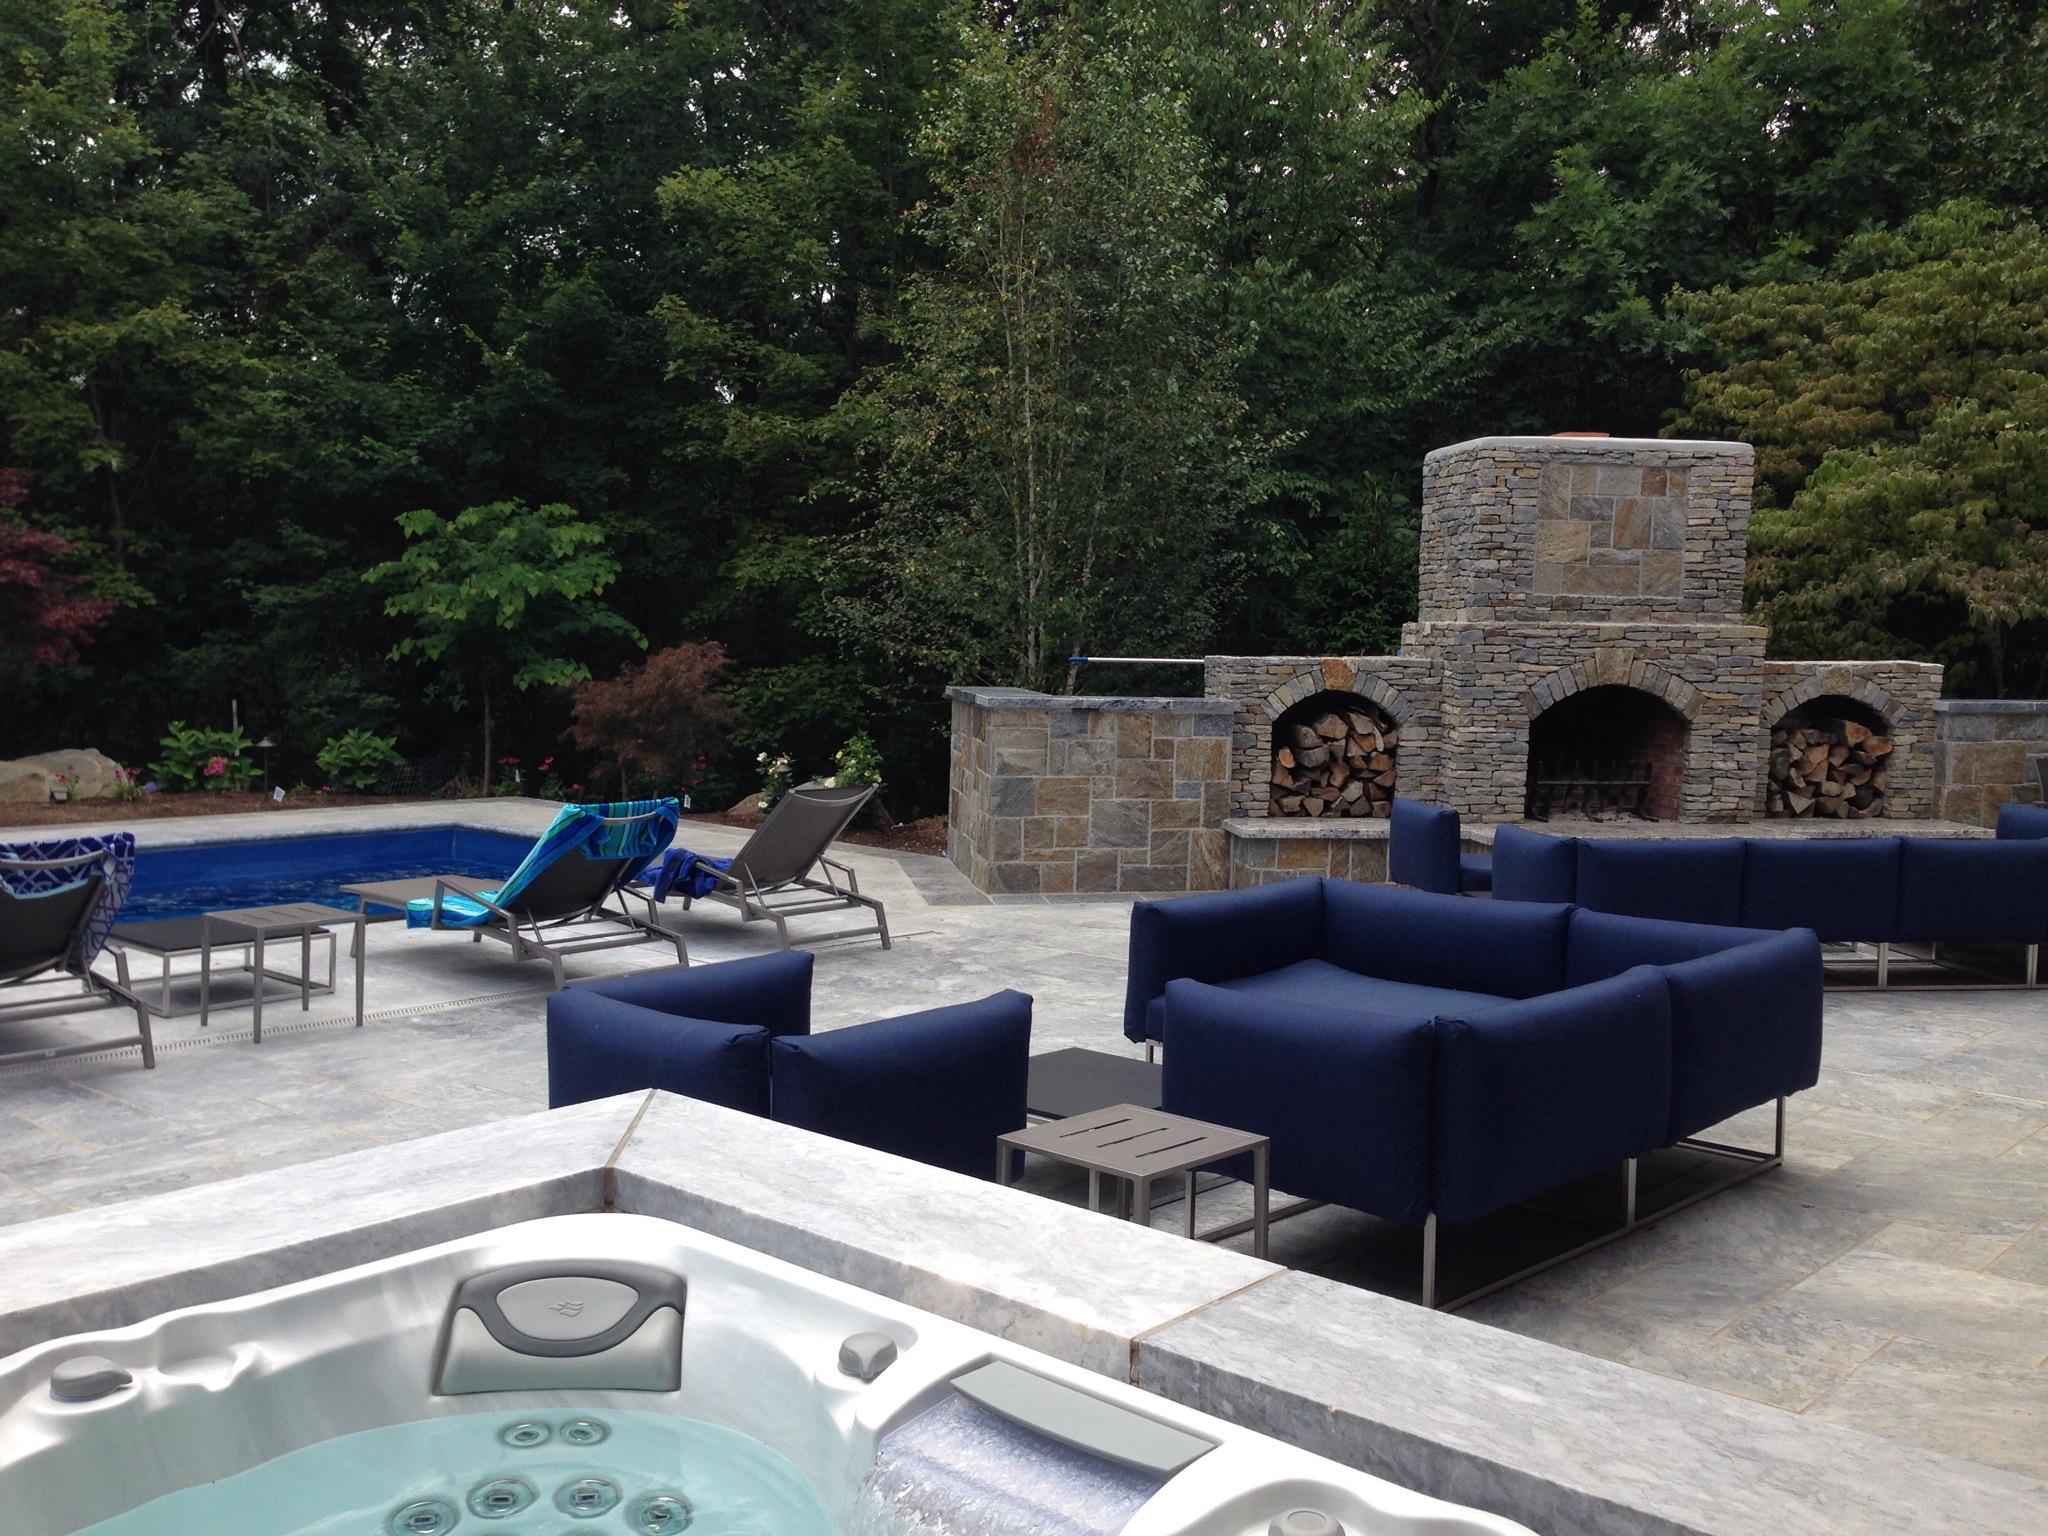 outdoor living and living outdoors fabulously are not created